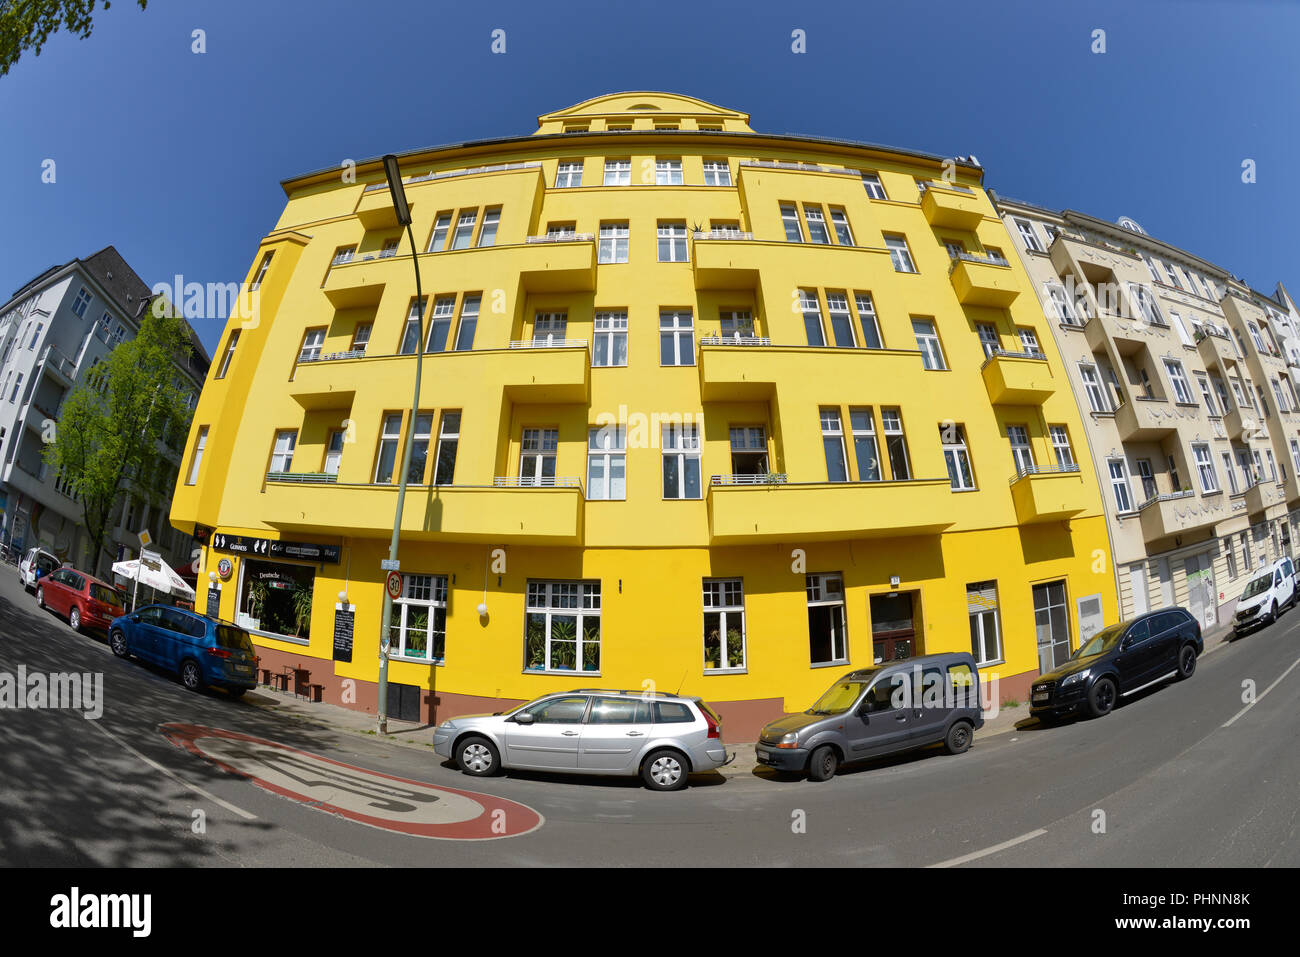 Altbau, Monumentenstrasse, Schoeneberg, Berlin, Deutschland Stock Photo